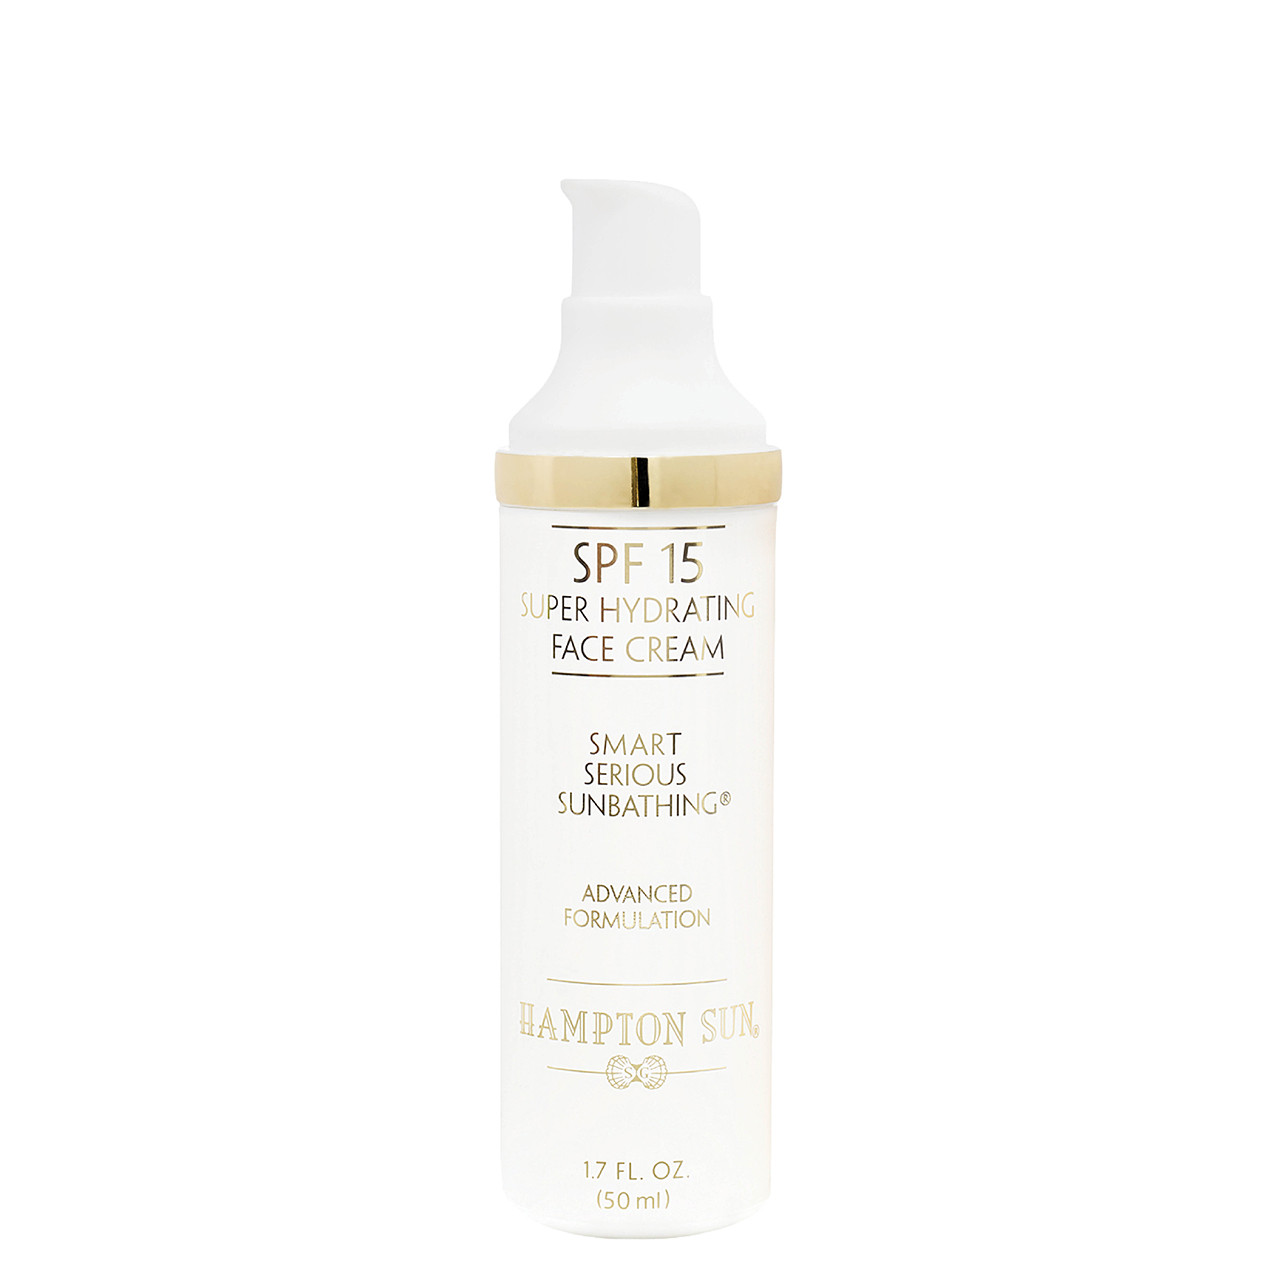 SPF 15 Face Cream 1.7 oz.